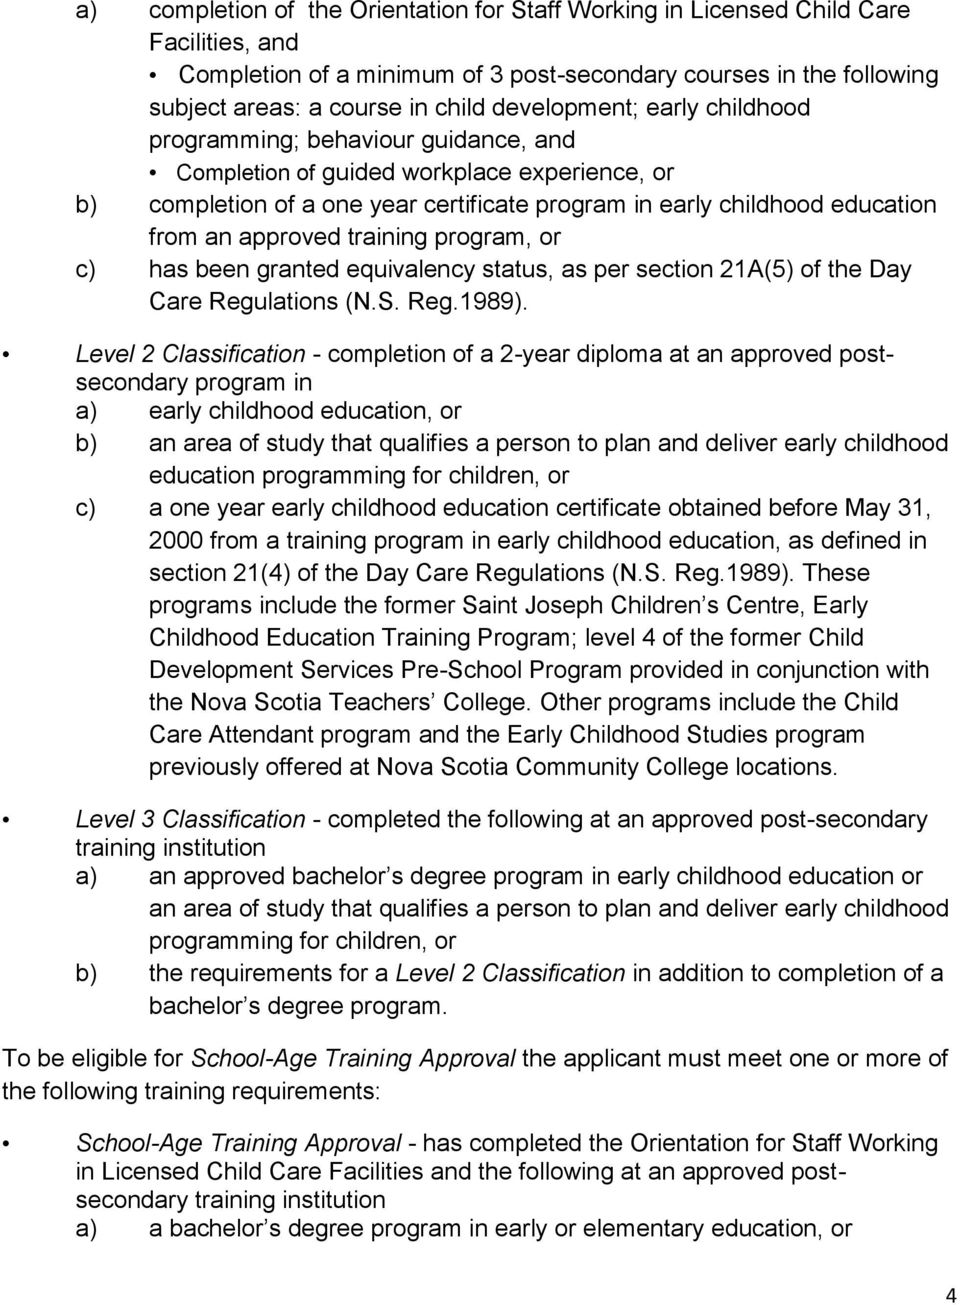 approved training program, or c) has been granted equivalency status, as per section 21A(5) of the Day Care Regulations (N.S. Reg.1989).